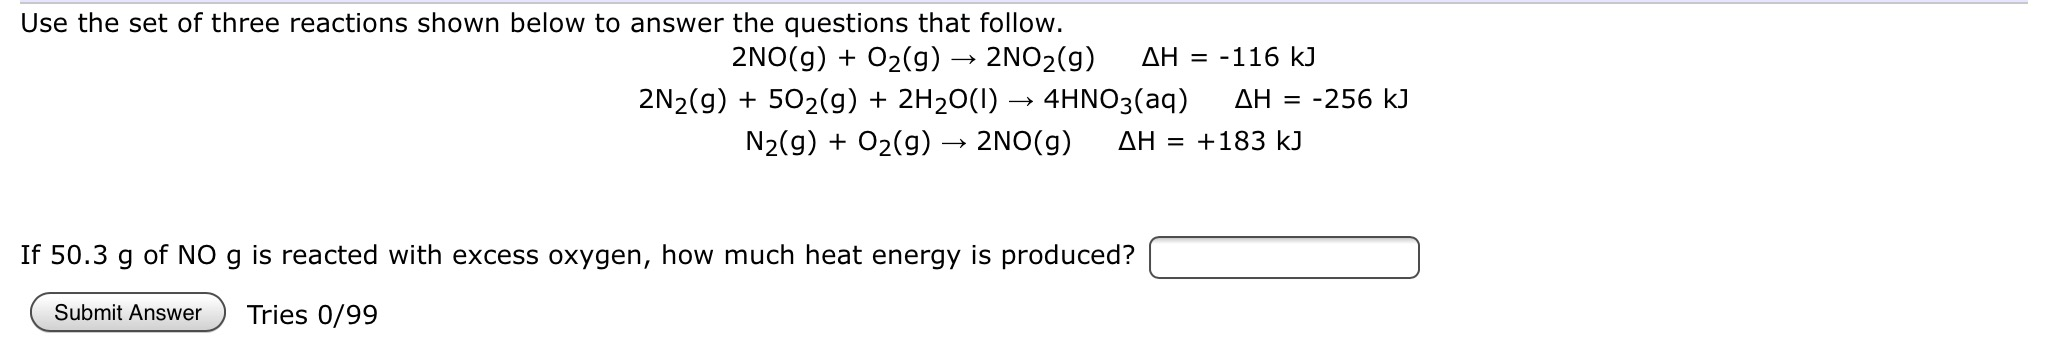 Use the set of three reactions shown below to answer the questions that follow. 2NO2(g) 2NO (g)O2(g) ΔΗ = -116 kJ 2N2(g)502(g) 2H20()4HNO3(aq) AH 256 kJ N2(g)O2(g) - 2NO(g) AH =183 kJ If 50.3 g of NO g is reacted with excess oxygen, how much heat energy is produced? Tries 0/99 Submit Answer